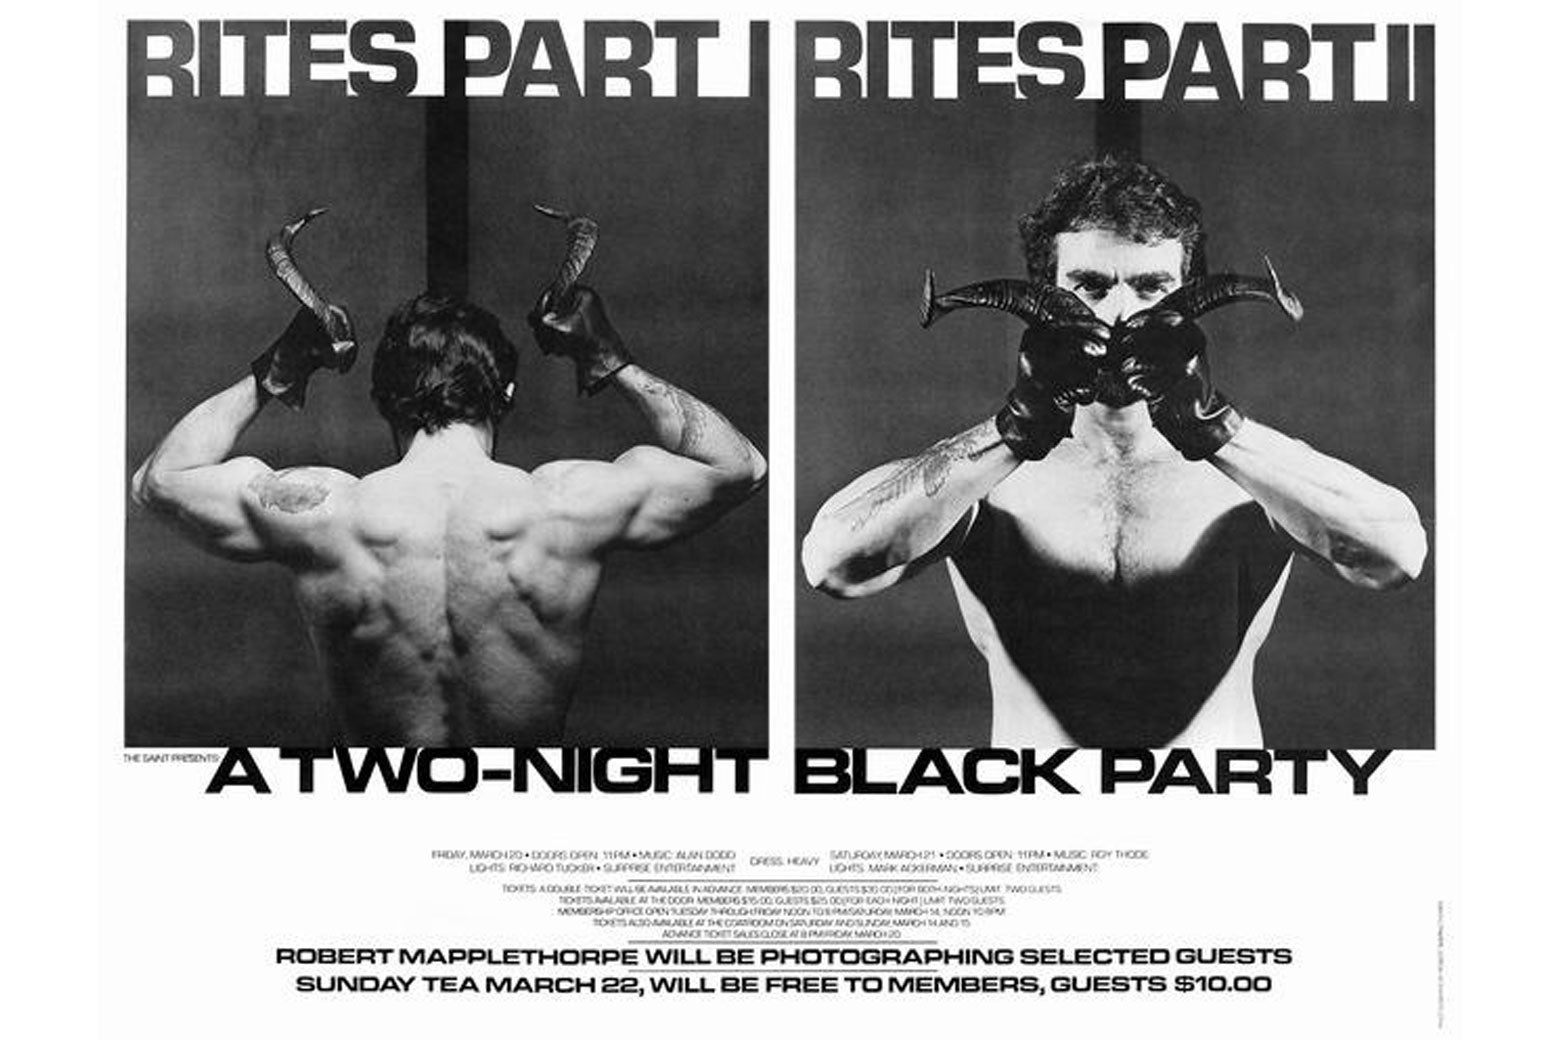 """Flyer reads """"BITES PART I"""" and """"BITES PART II"""" over photos of a topless man holding devil horns, and below: """"A TWO-NIGHT BLACK PARTY."""""""